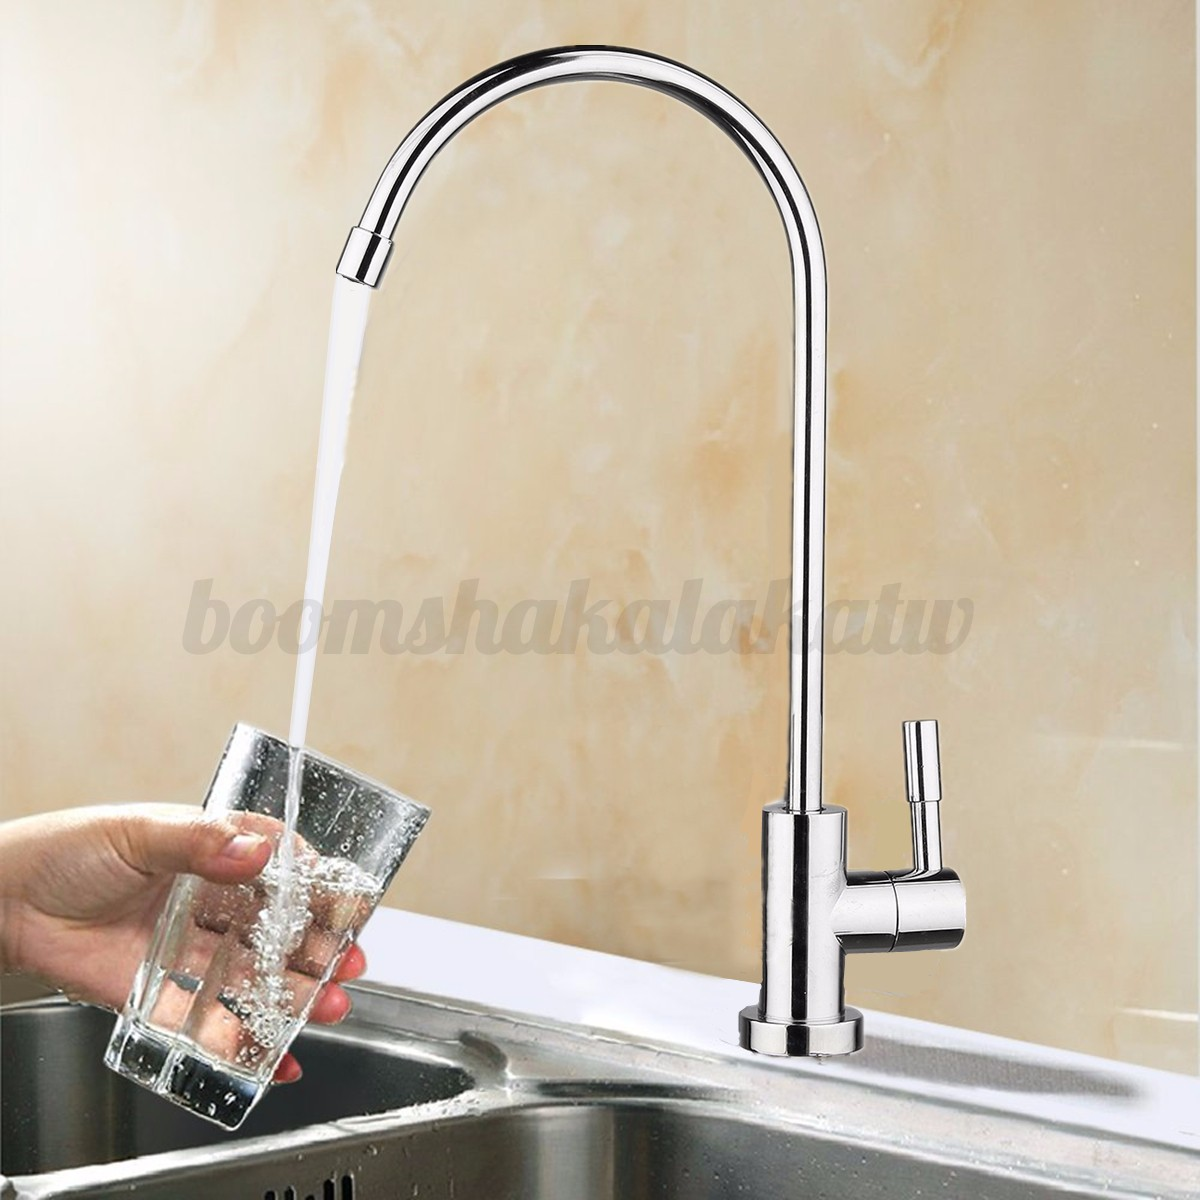 filter basic system filtration black pur water systems faucet